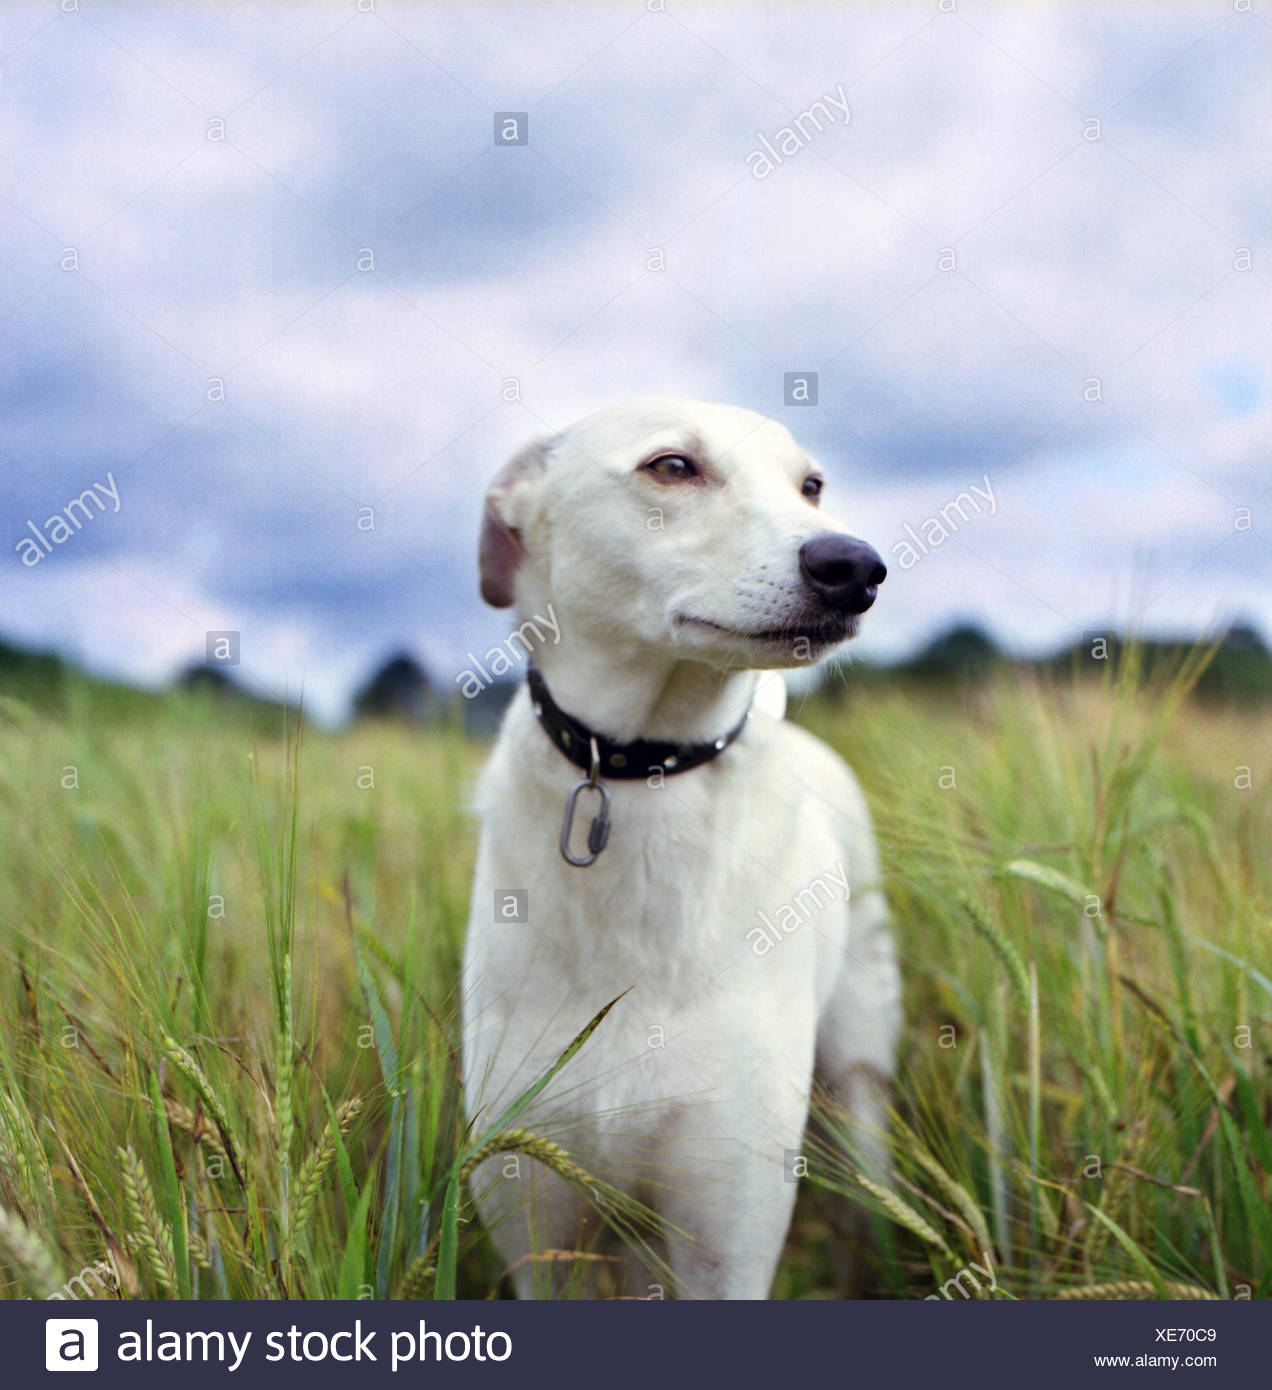 Portrait of Whippet dog standing in wheat field - Stock Image